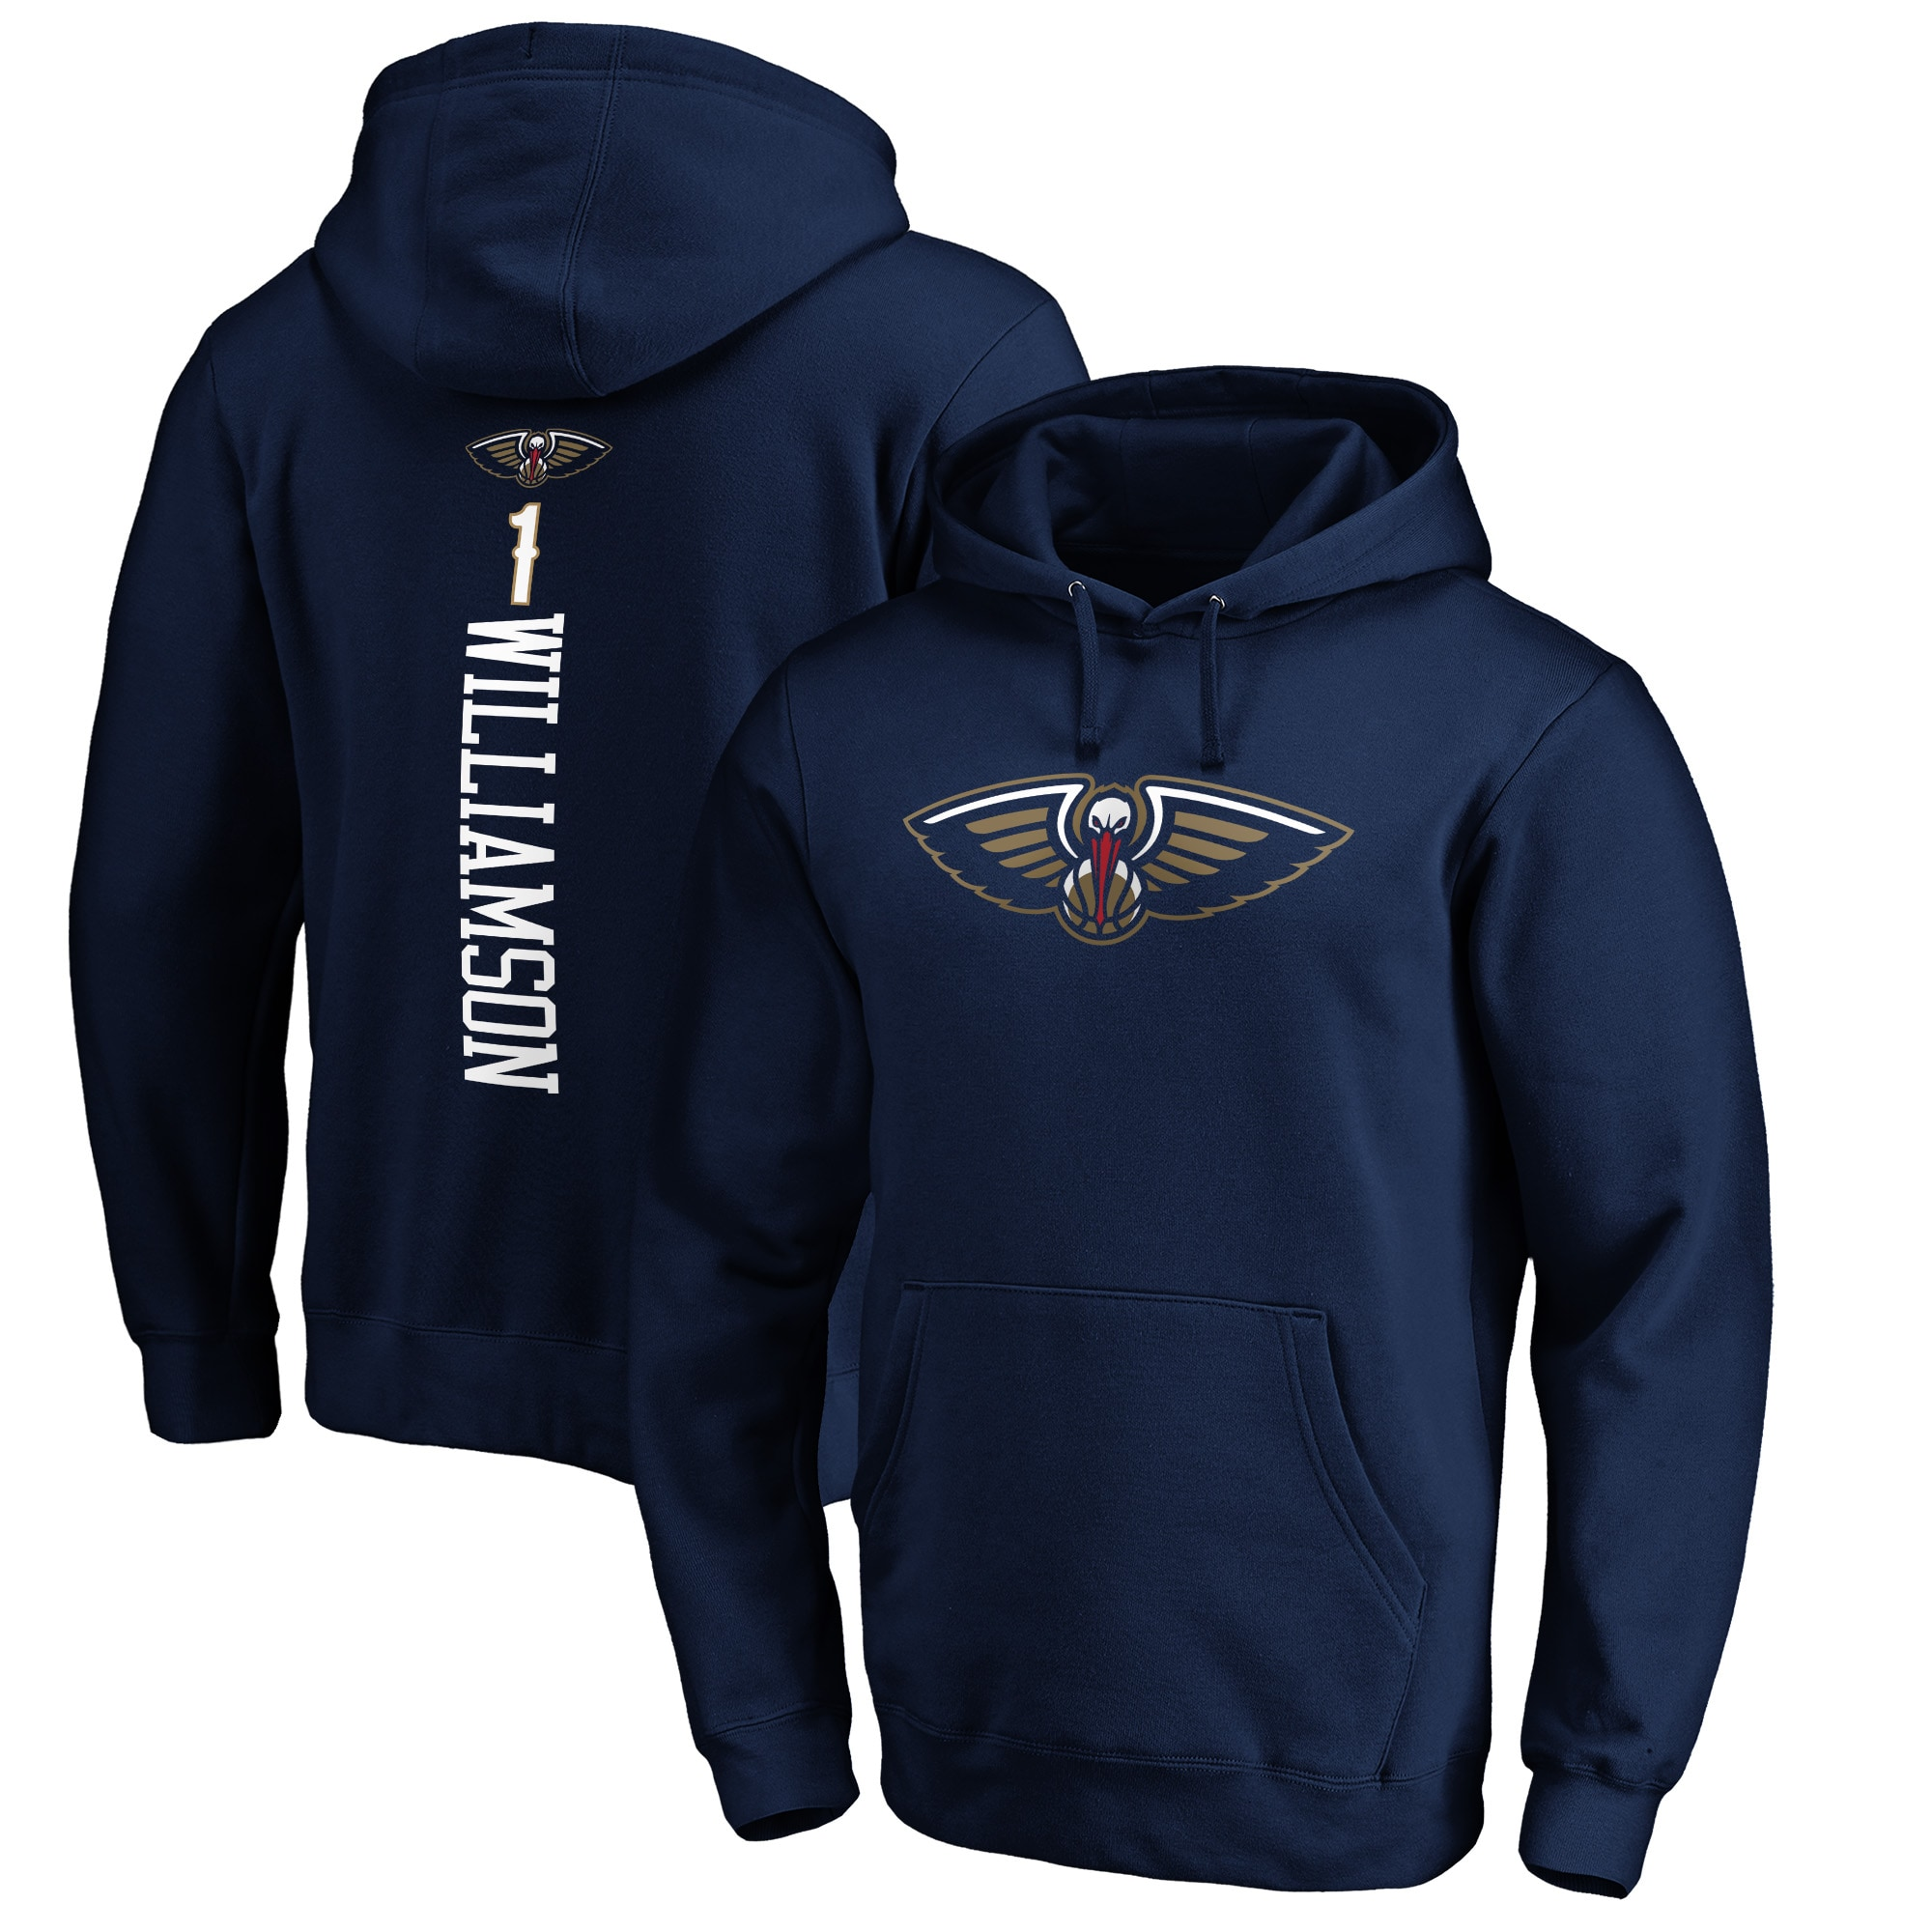 Zion Williamson New Orleans Pelicans Fanatics Branded Playmaker Name & Number Pullover Hoodie - Navy